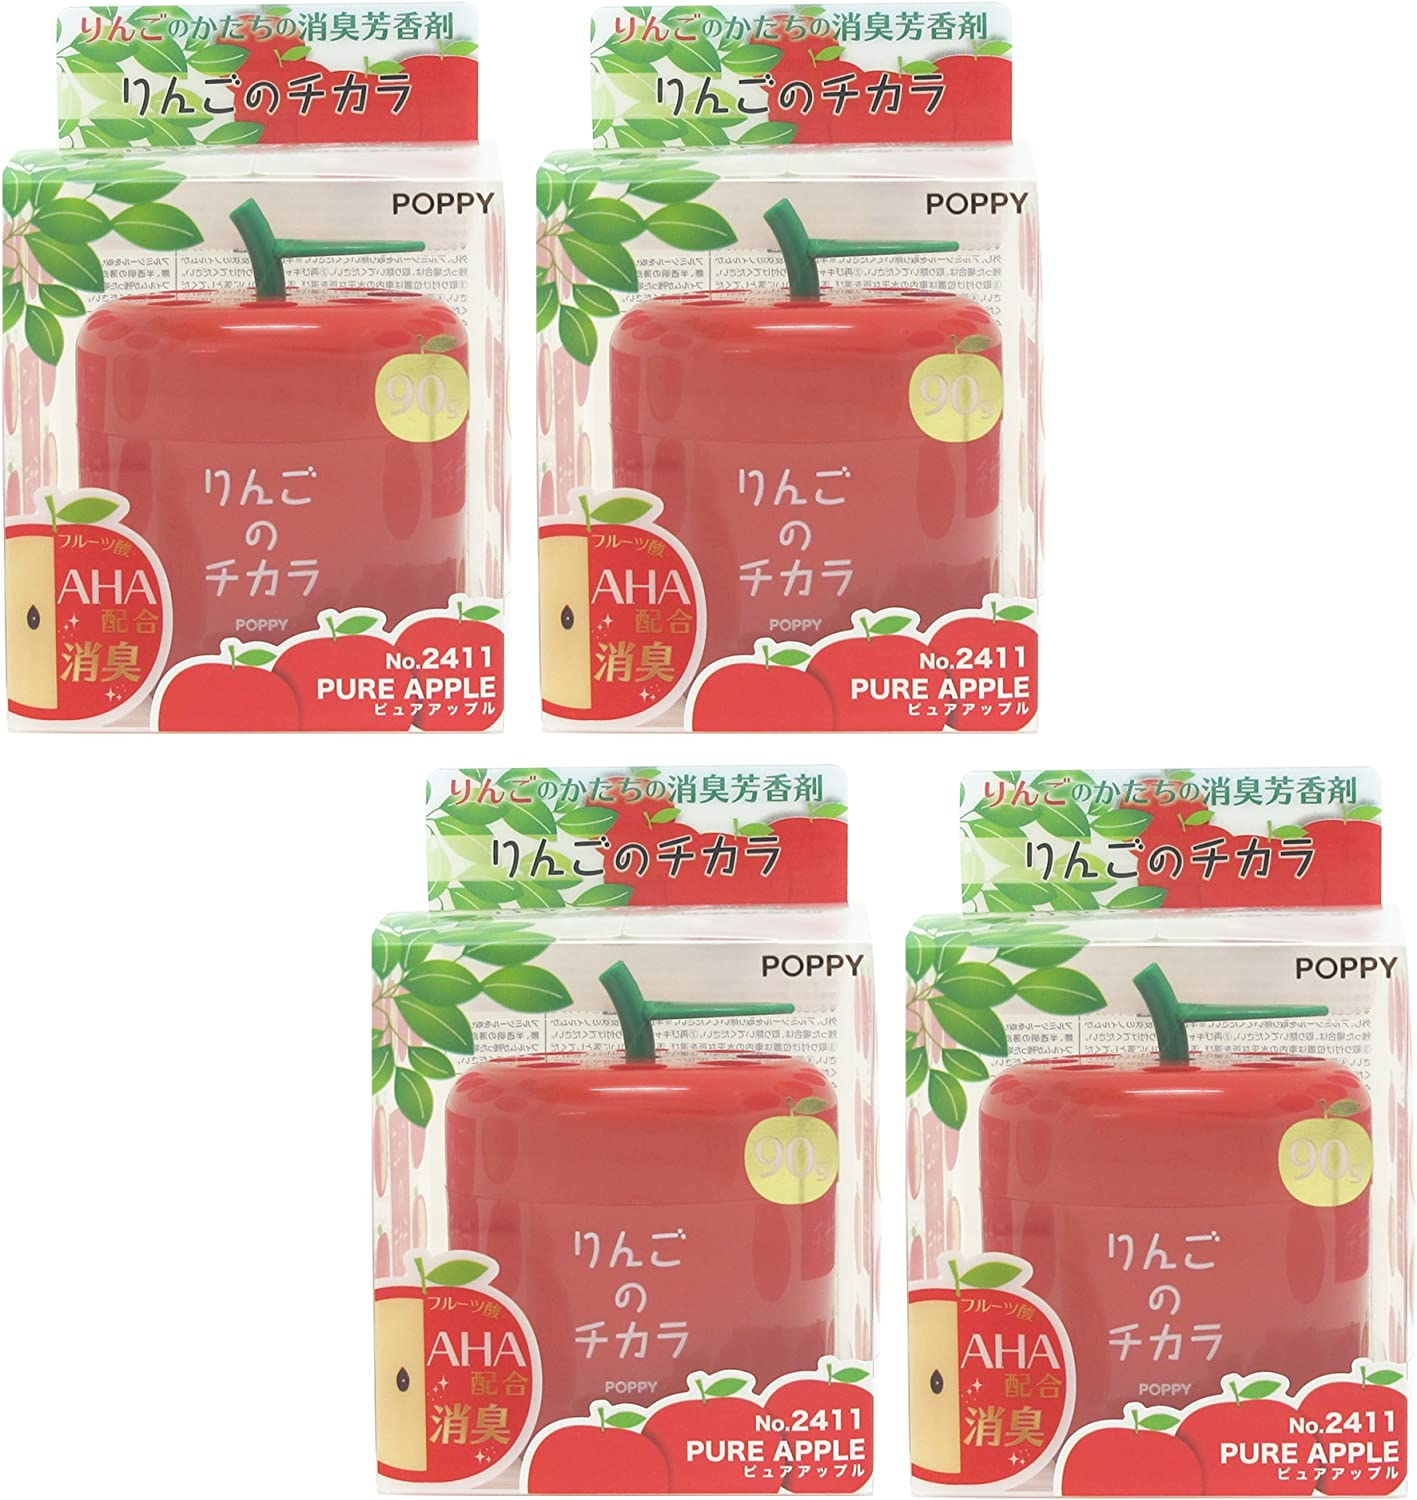 Super Apple car air freshener, 4 packs Pure Apple scent in cute Apple shape container, best JDM Japan Car, Home, Office Air Freshener